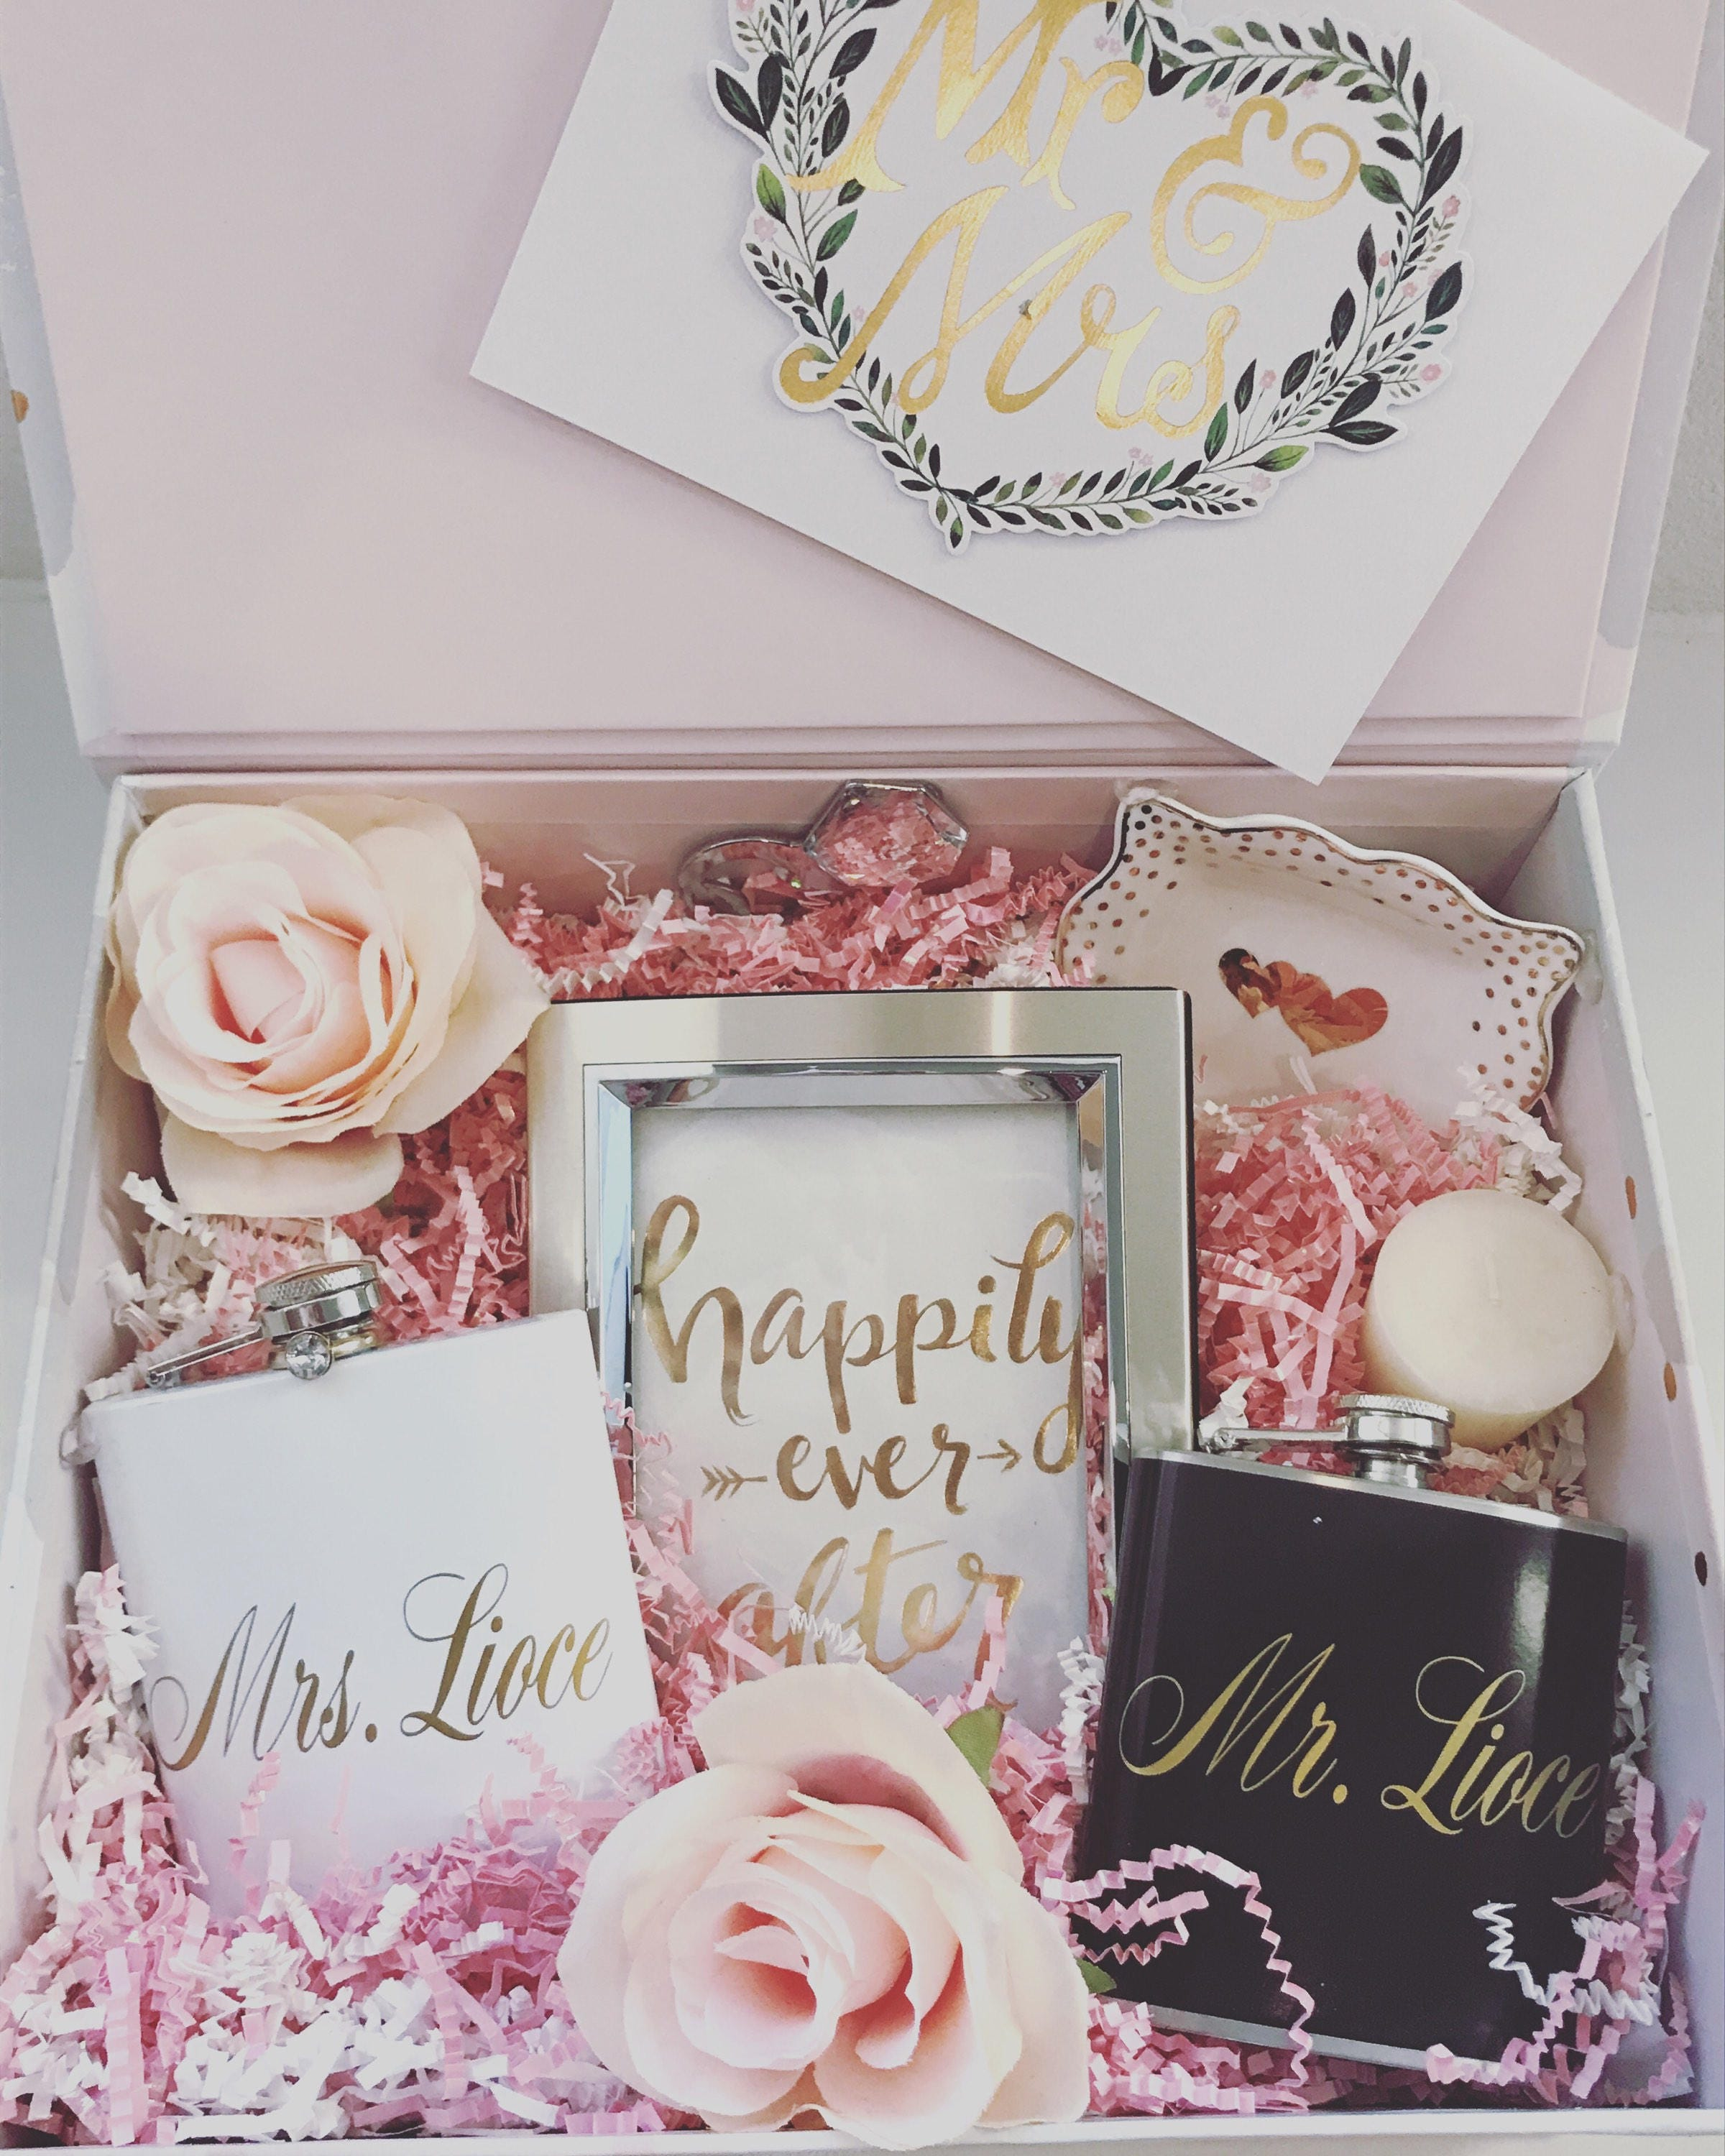 bridal zoviti blog shower wedding ideas the bride unique gifts receive every love for